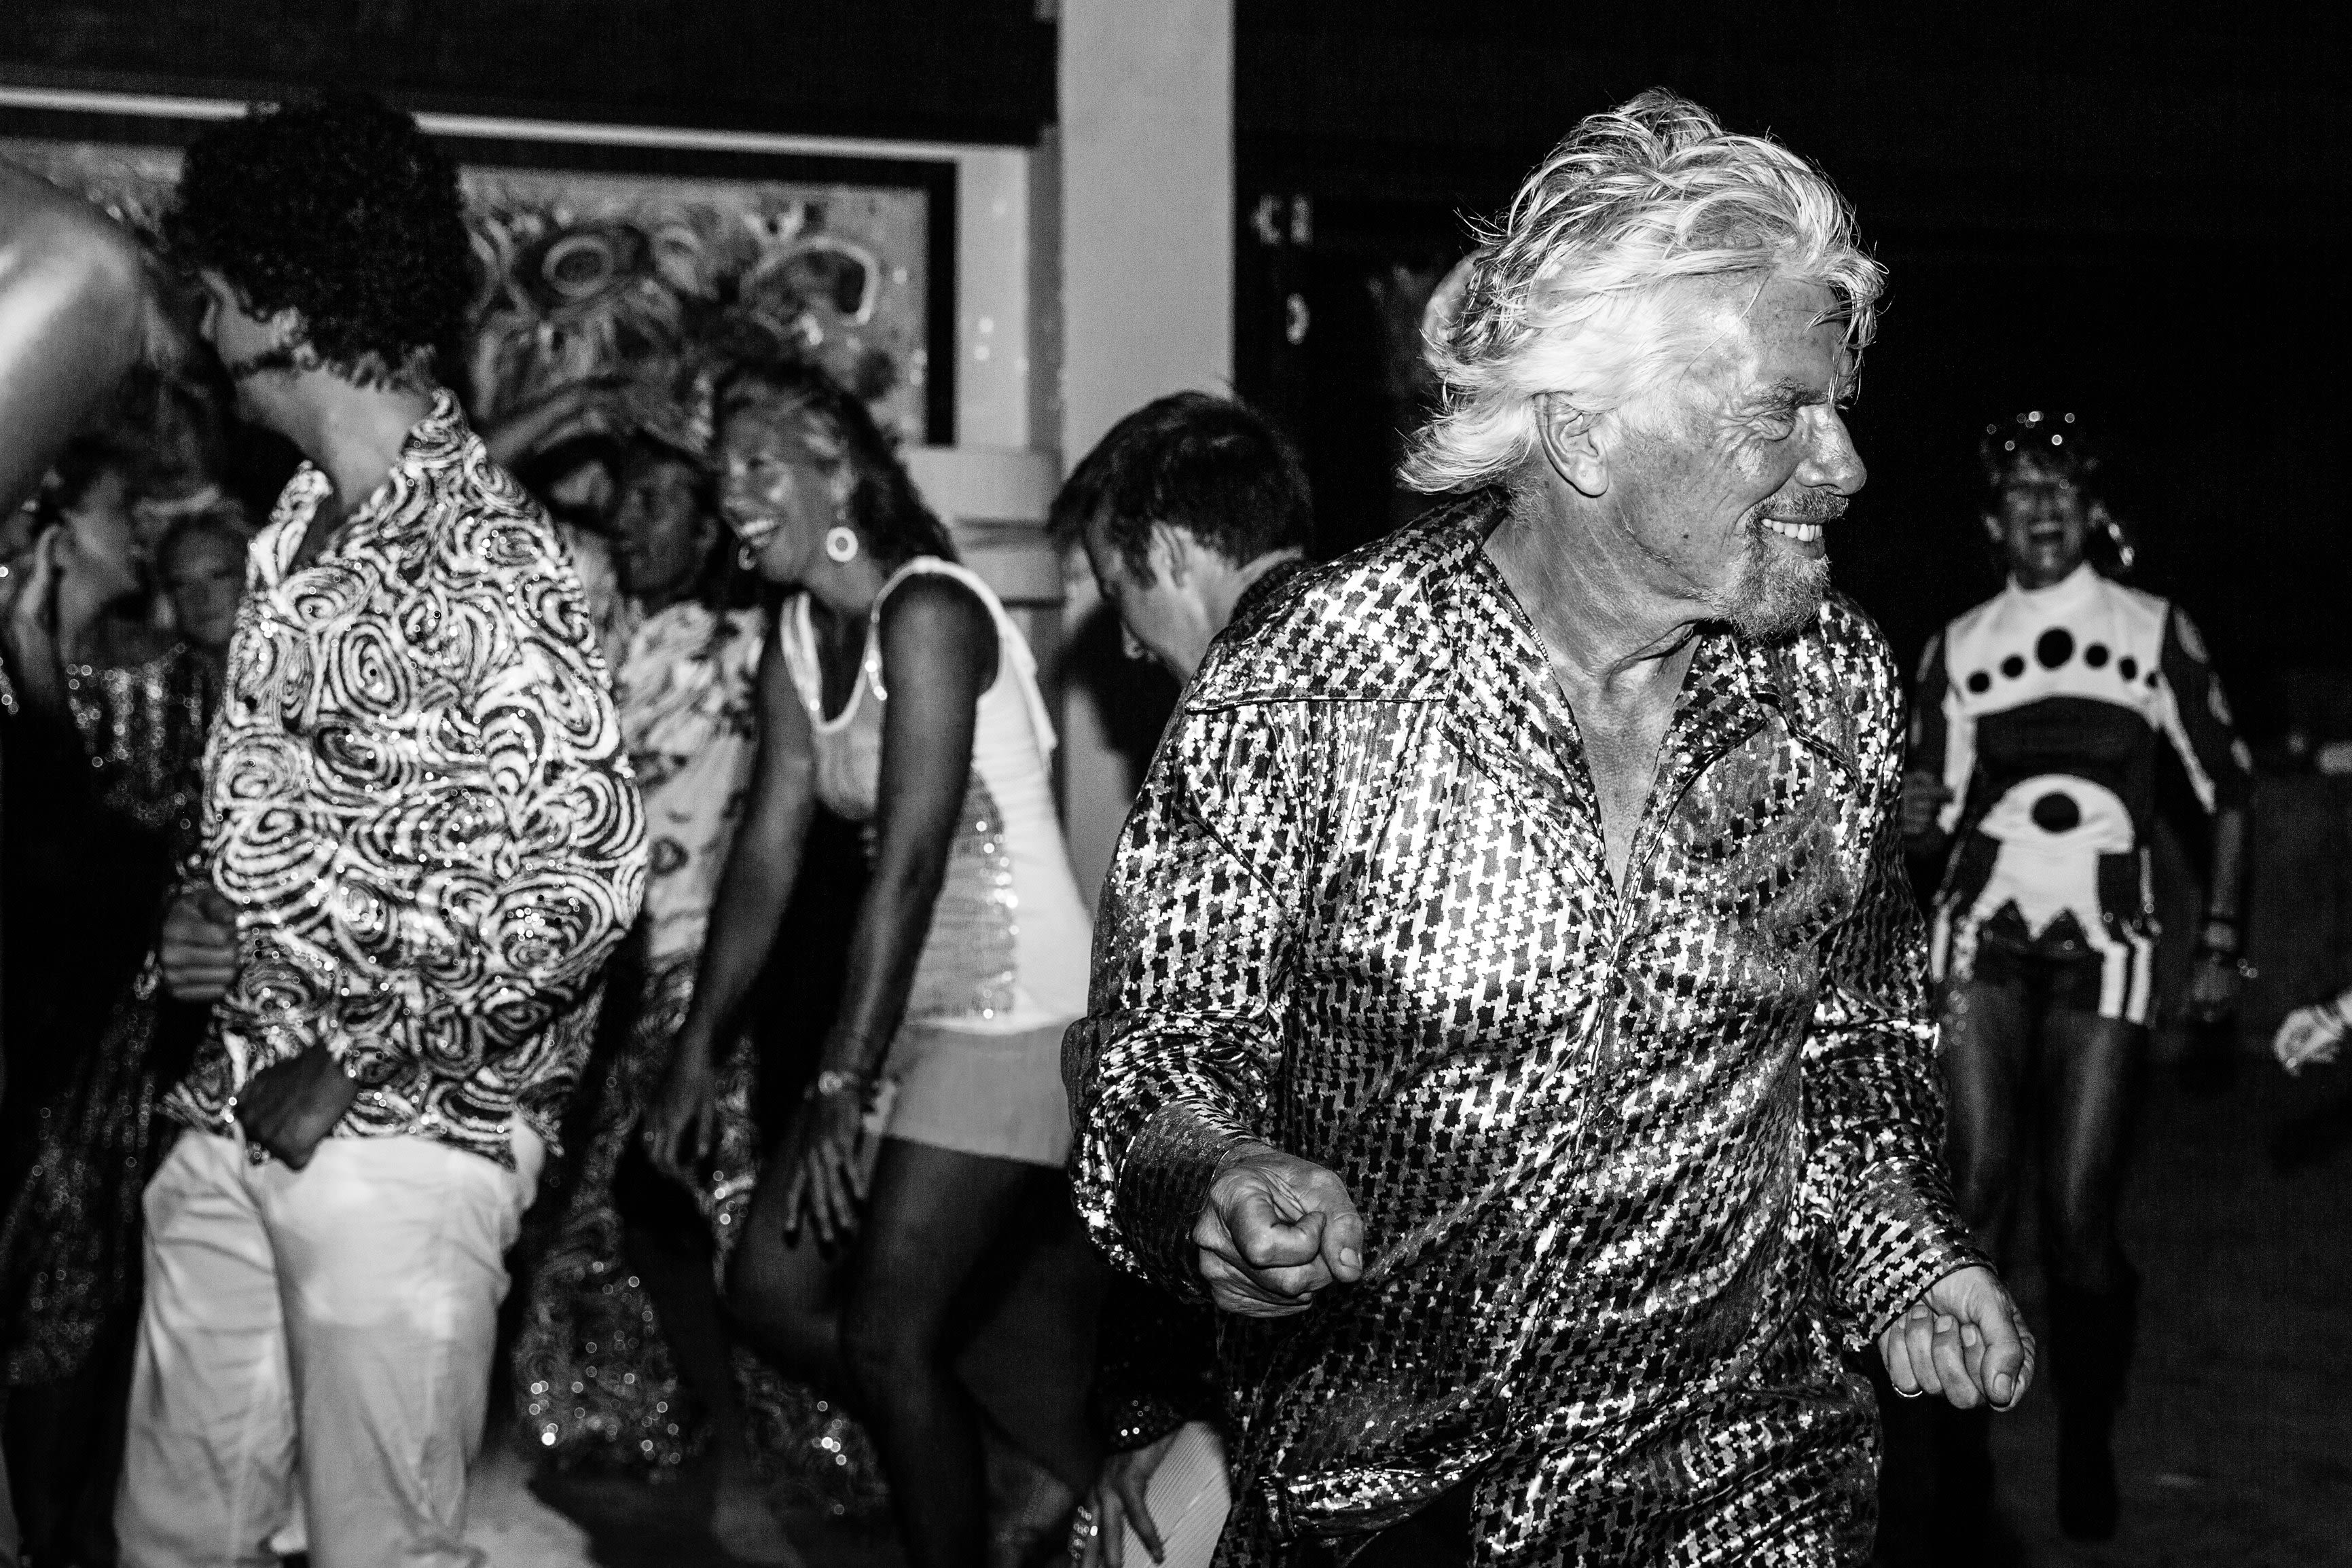 Black and white photo of Richard Branson dancing in snazzy shirt